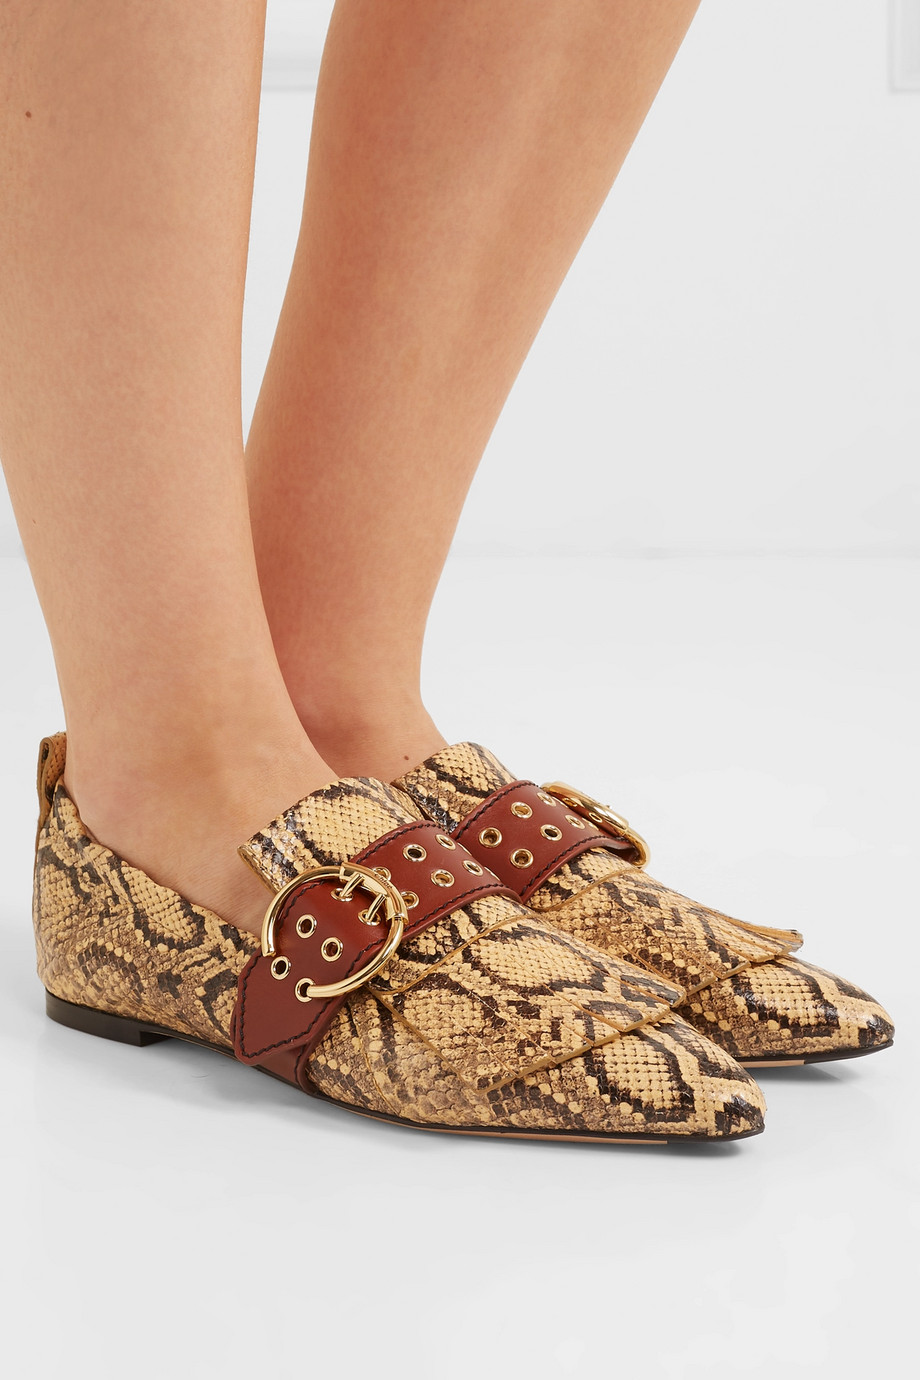 Chloé Snake-effect leather loafers